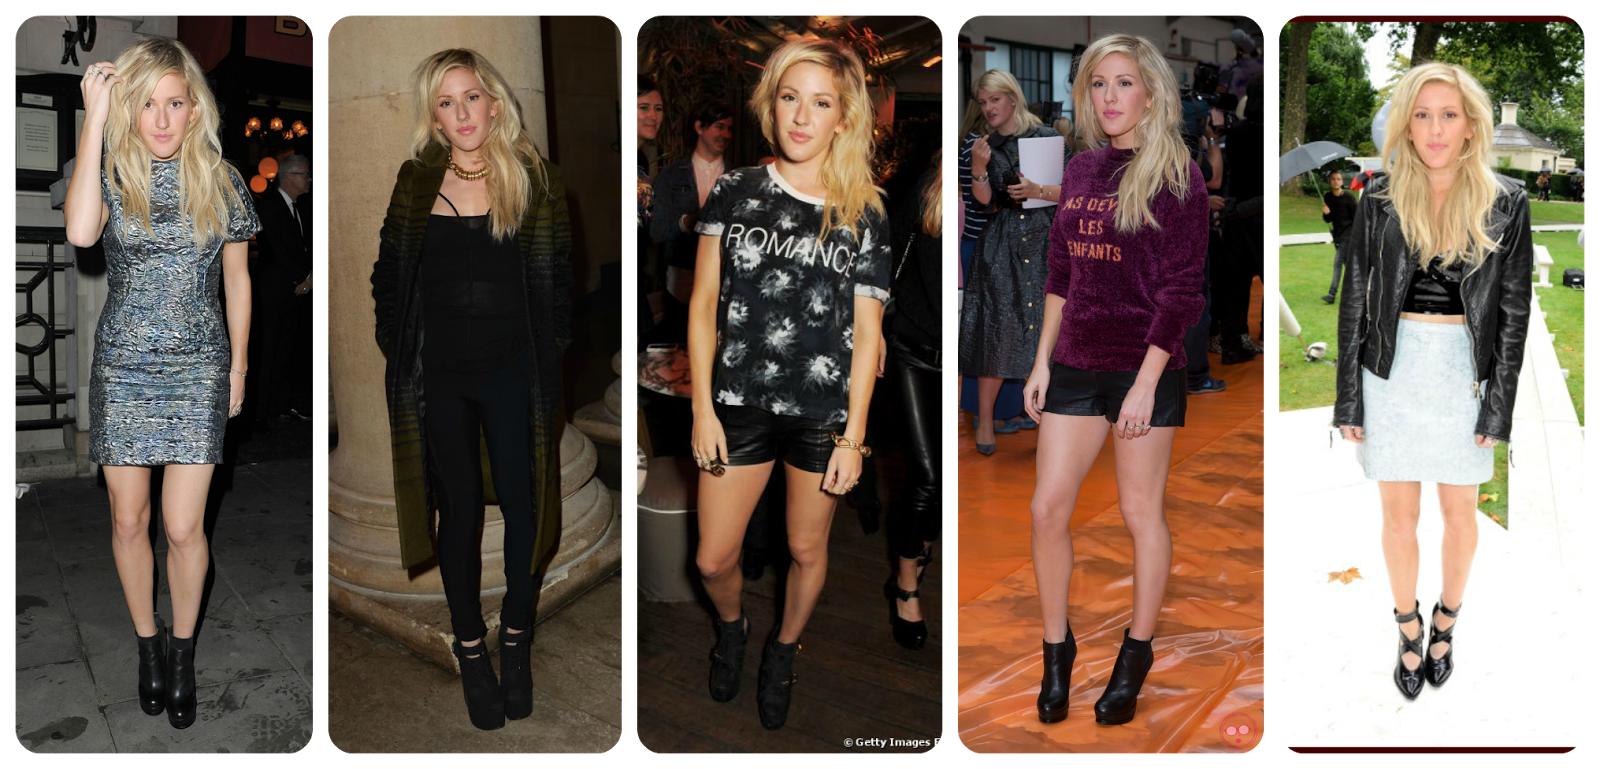 London Fashion Week 2013 - Ellie Goulding